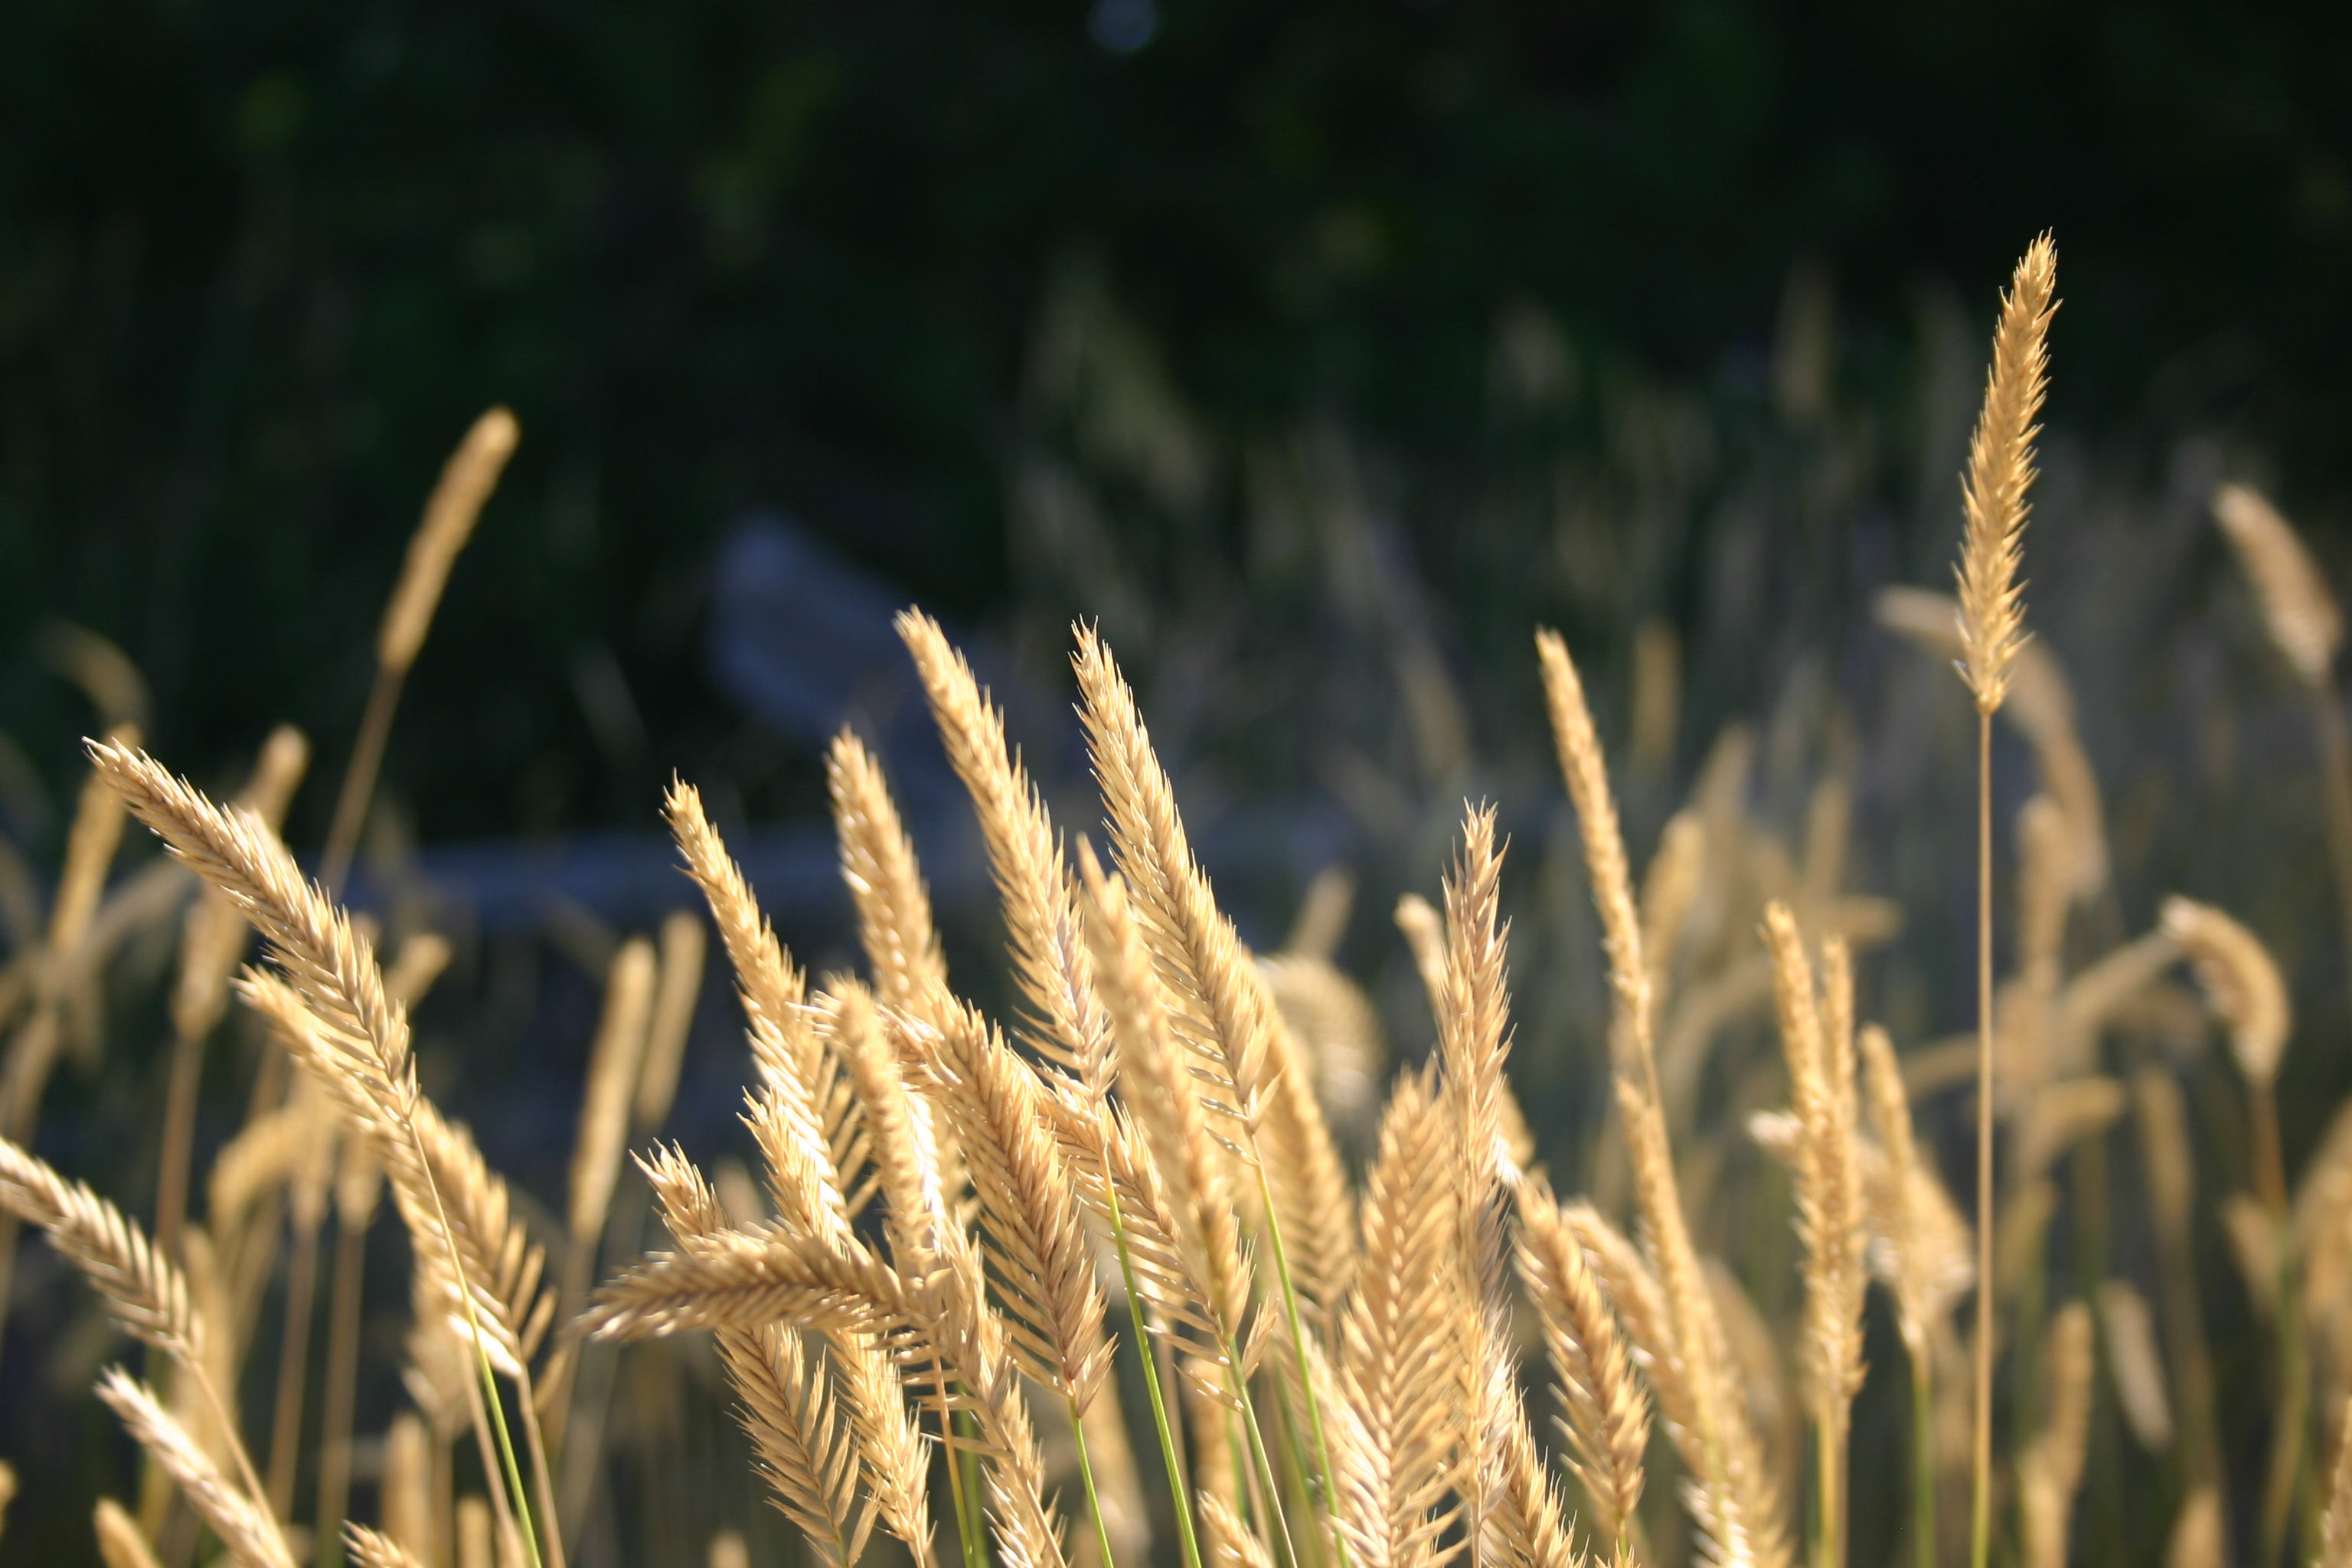 Stalks of wheat (or a similar plant).